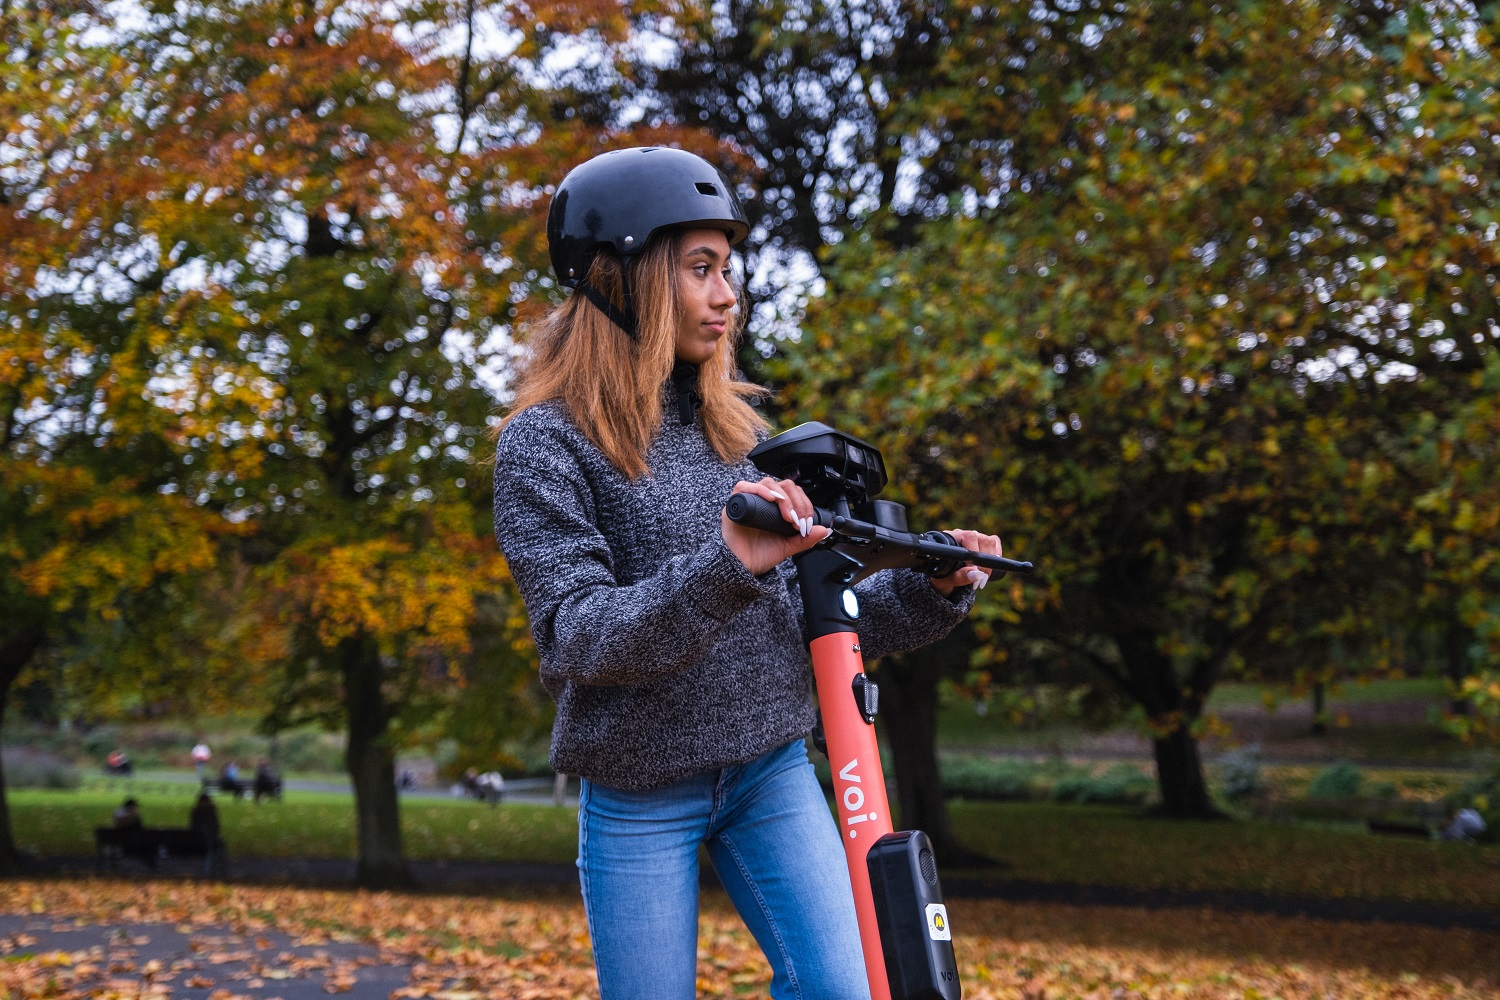 New survey reveals public support for shared e-scooters